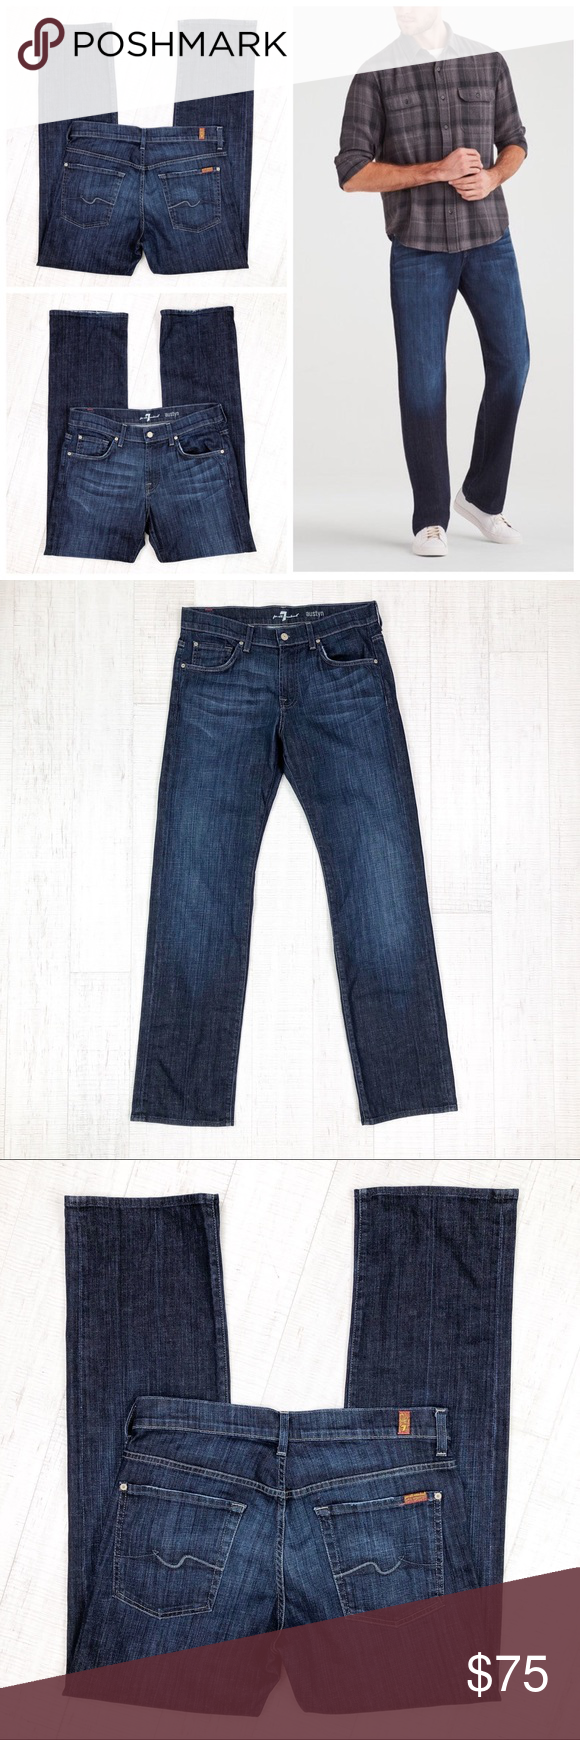 7 For All Mankind Mens Austyn Relaxed Straight in Epic